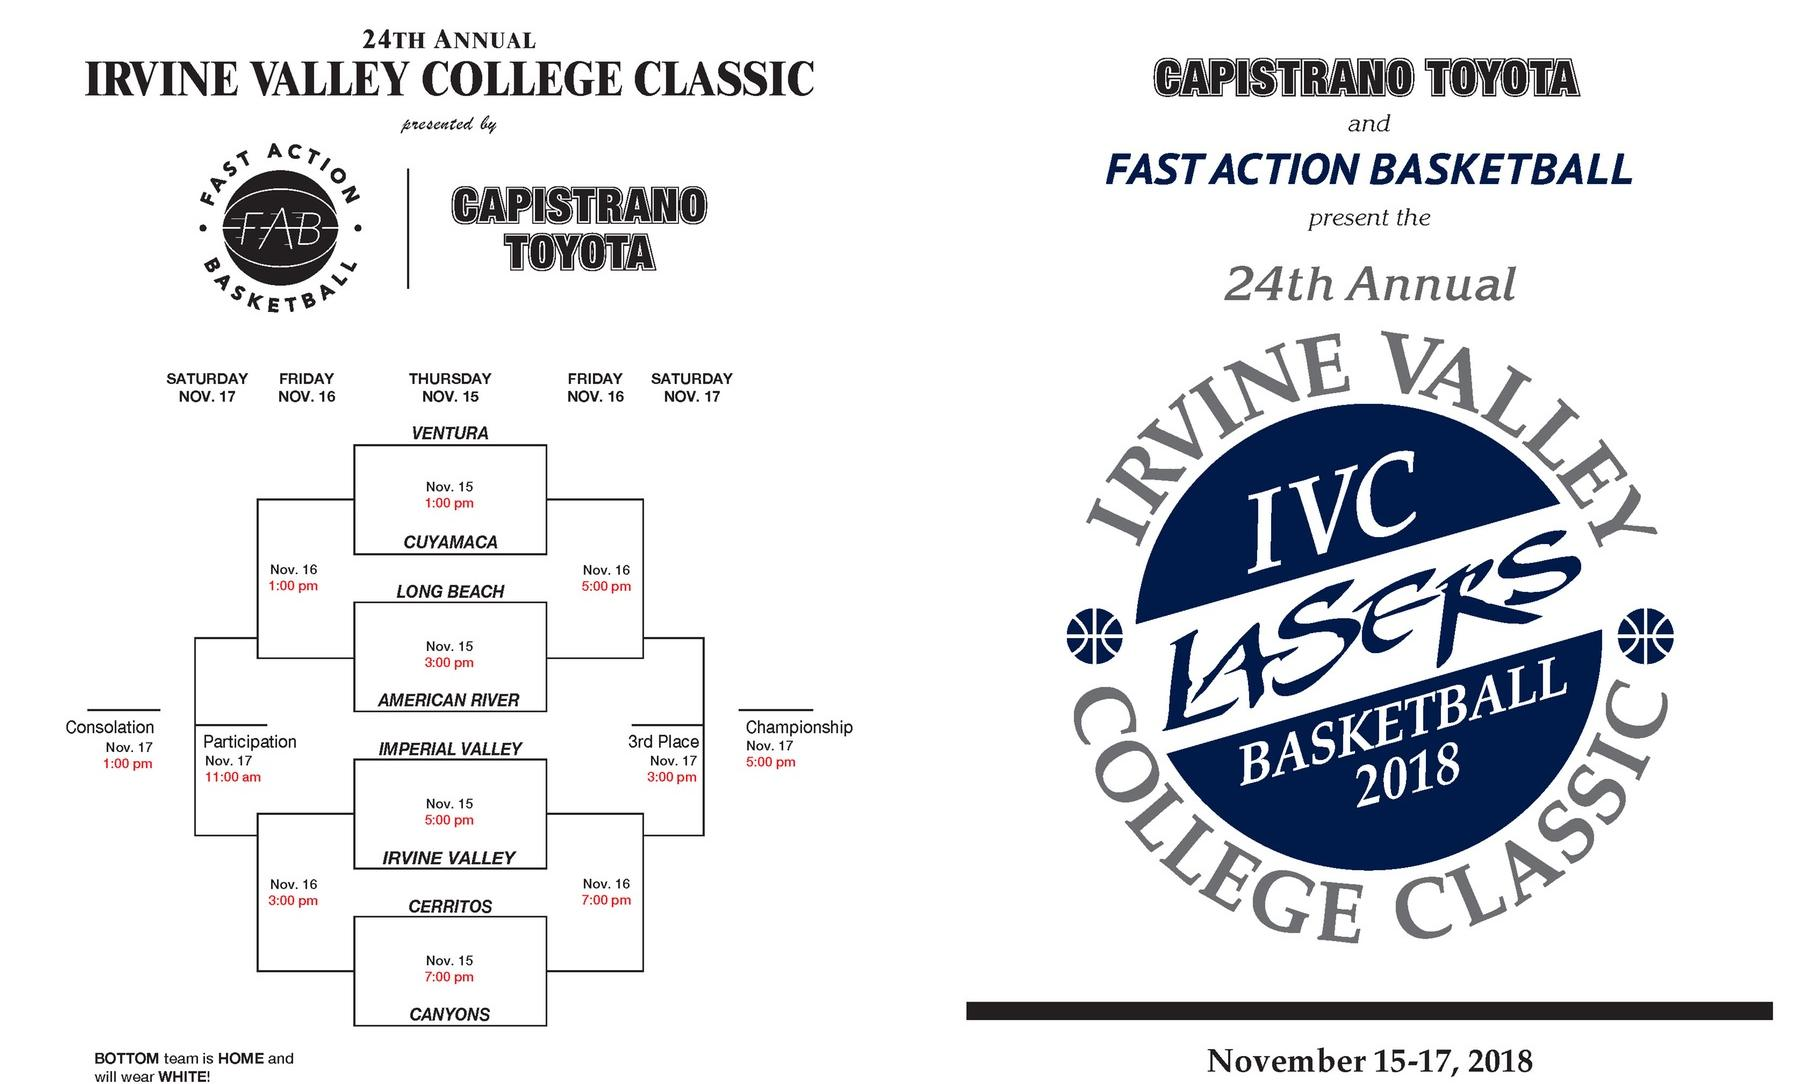 24th Annual Irvine Valley College Classic tips off Thursday